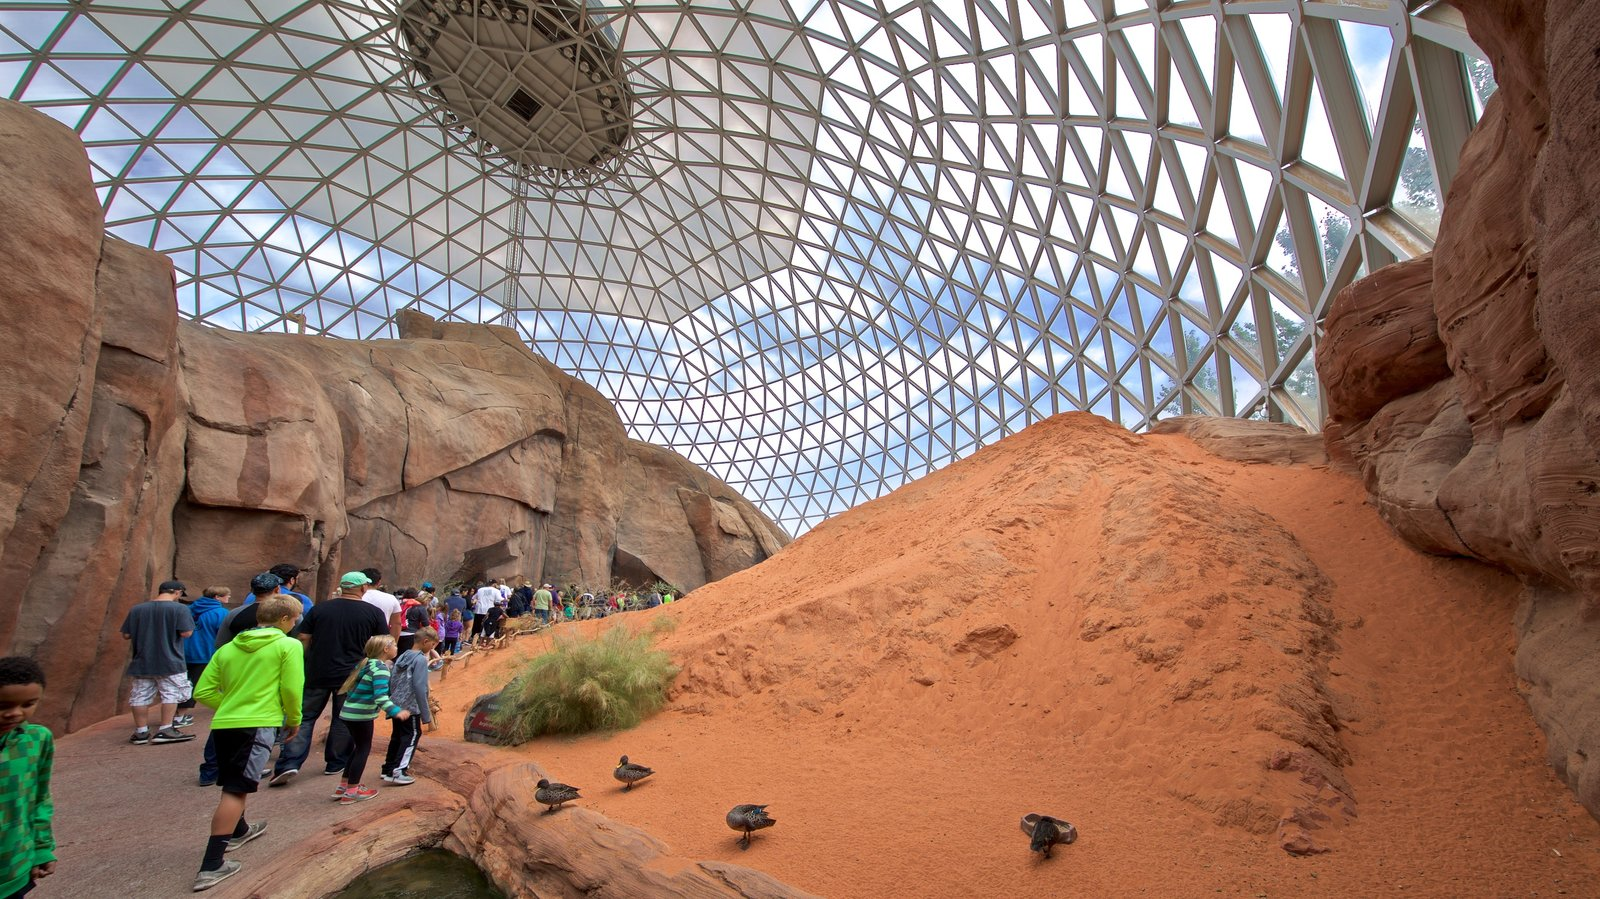 Henry Doorly Zoo which includes bird life and interior views as well as a small group of people